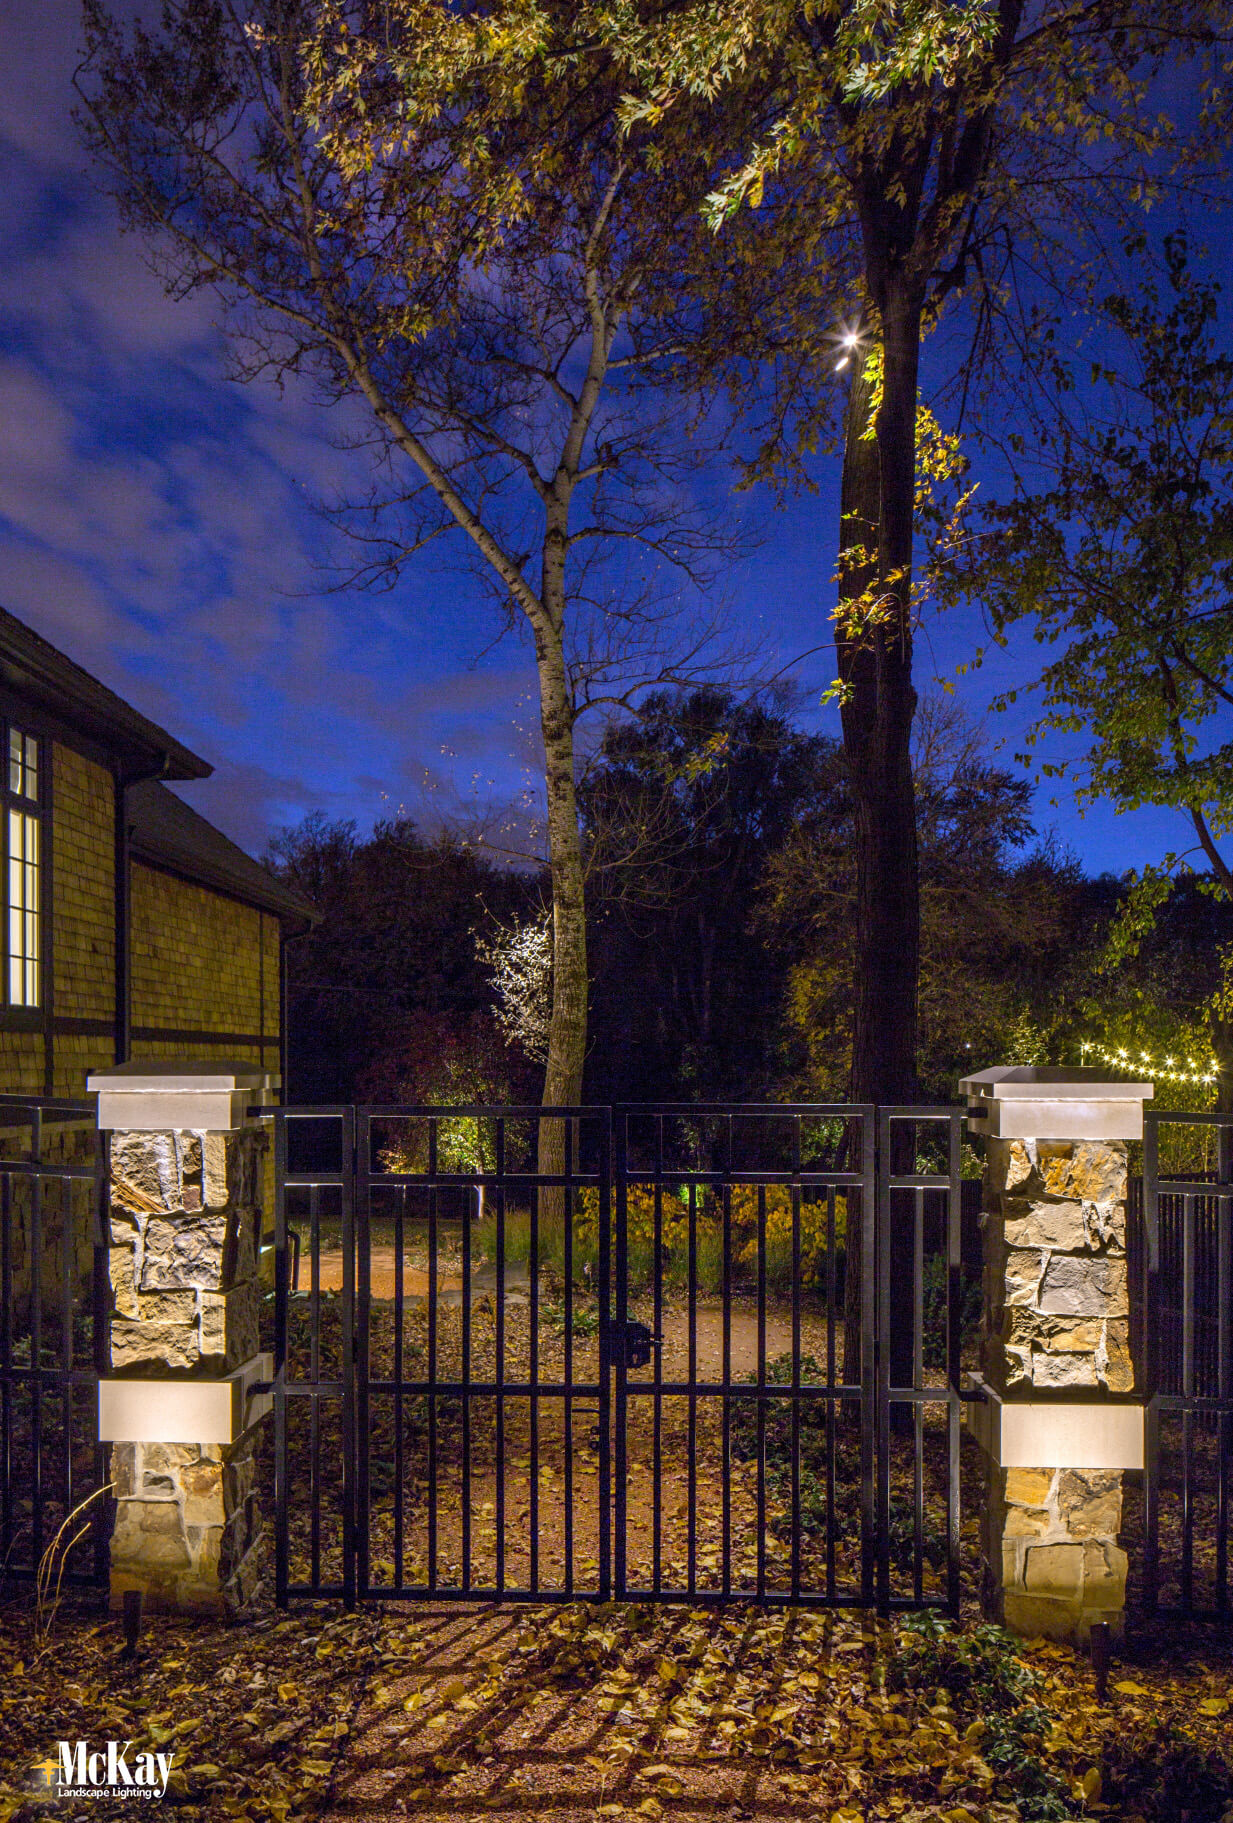 If you have a nearby tree, you could downlight the area. Light shines from above to gently illuminate the gate entrance. It's soft, yet provides ample light to increase visibility, and creates unique and interesting shadows at the same time. Learn more... | McKay Landscape Lighting - Omaha Nebraska